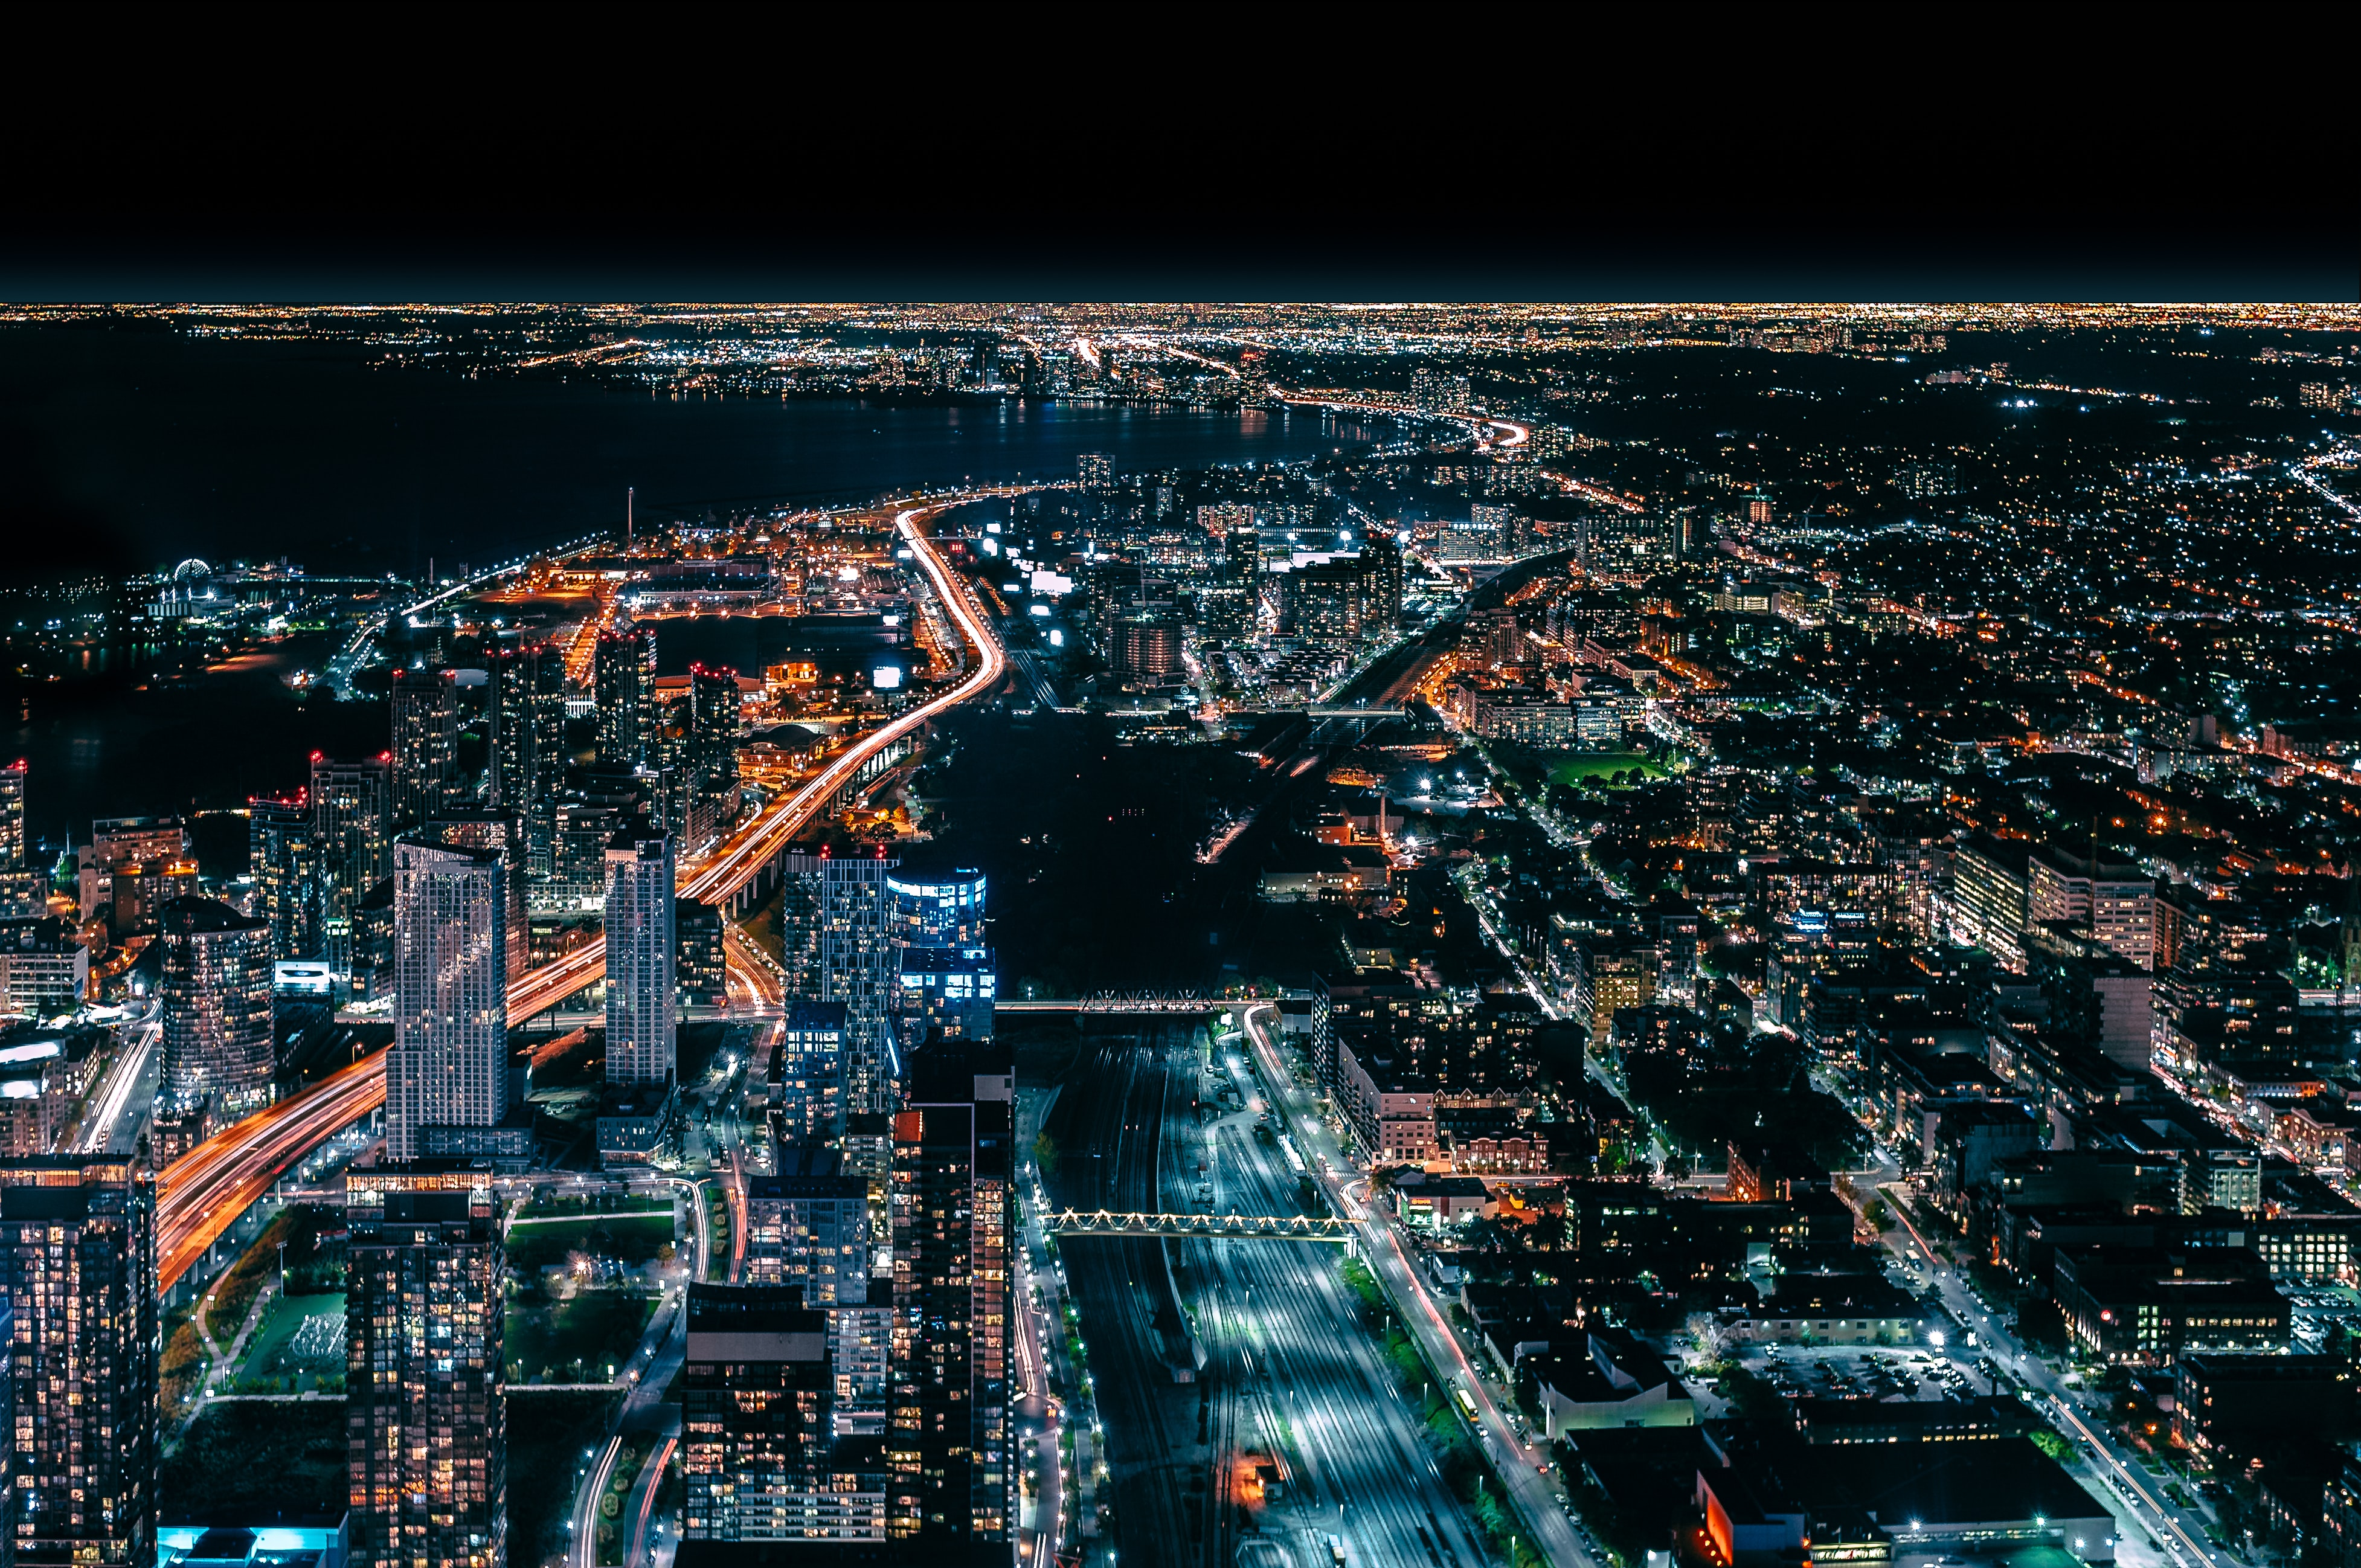 time lapse photography of city during night time